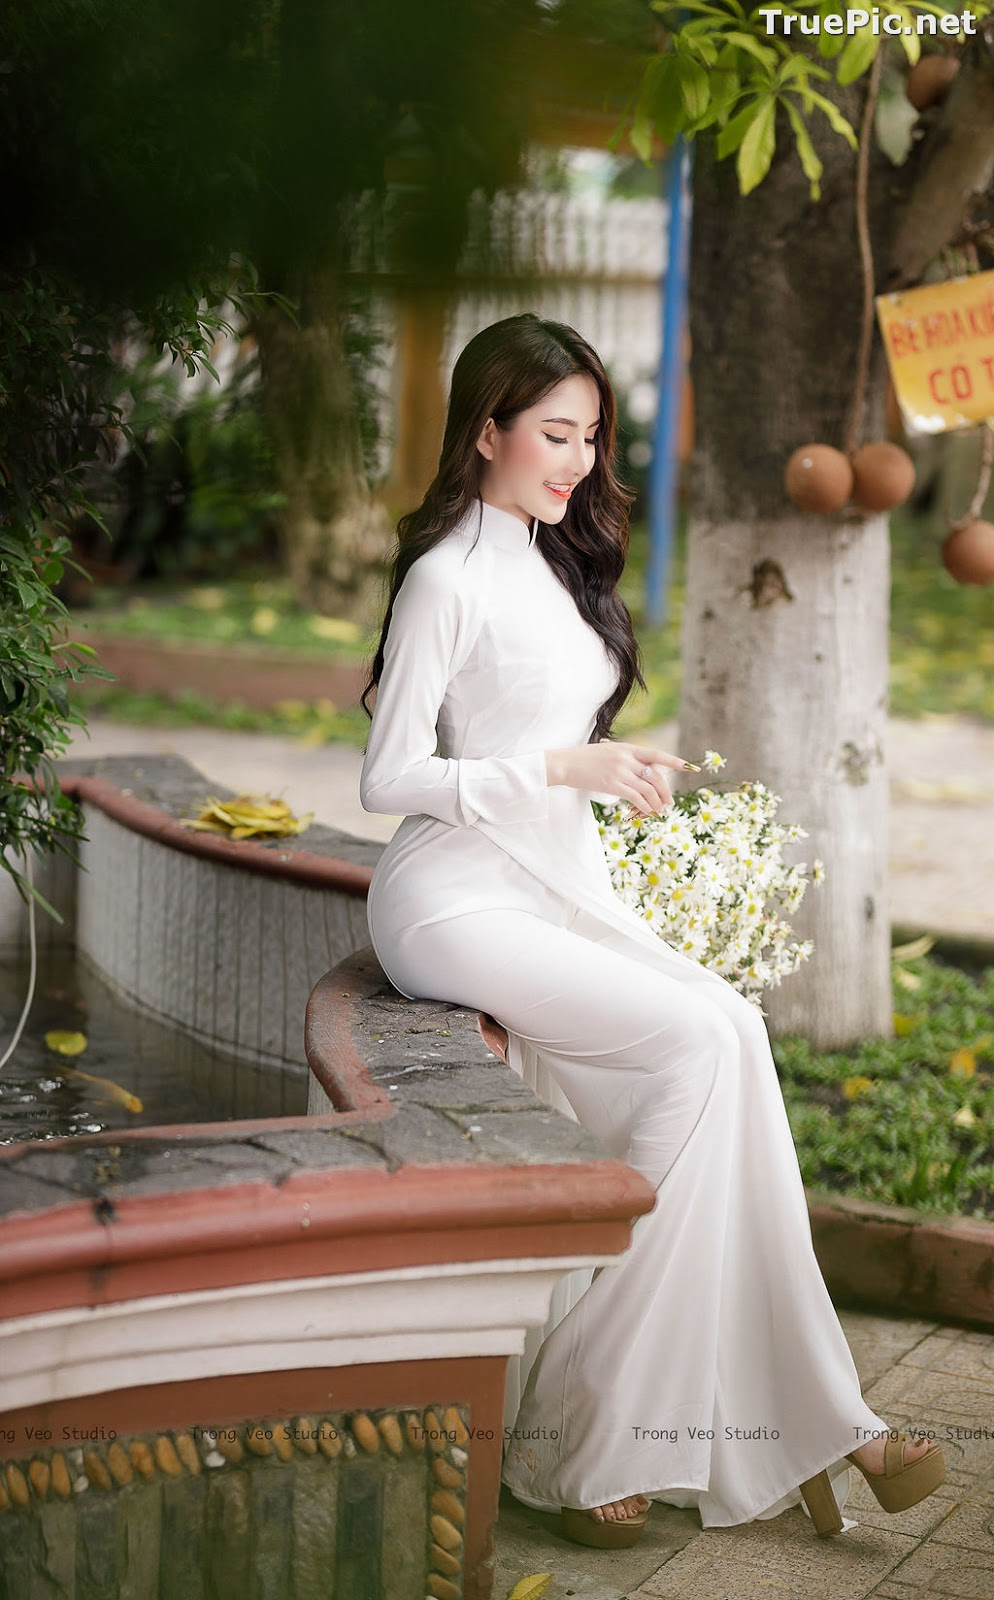 Image The Beauty of Vietnamese Girls with Traditional Dress (Ao Dai) #3 - TruePic.net - Picture-6